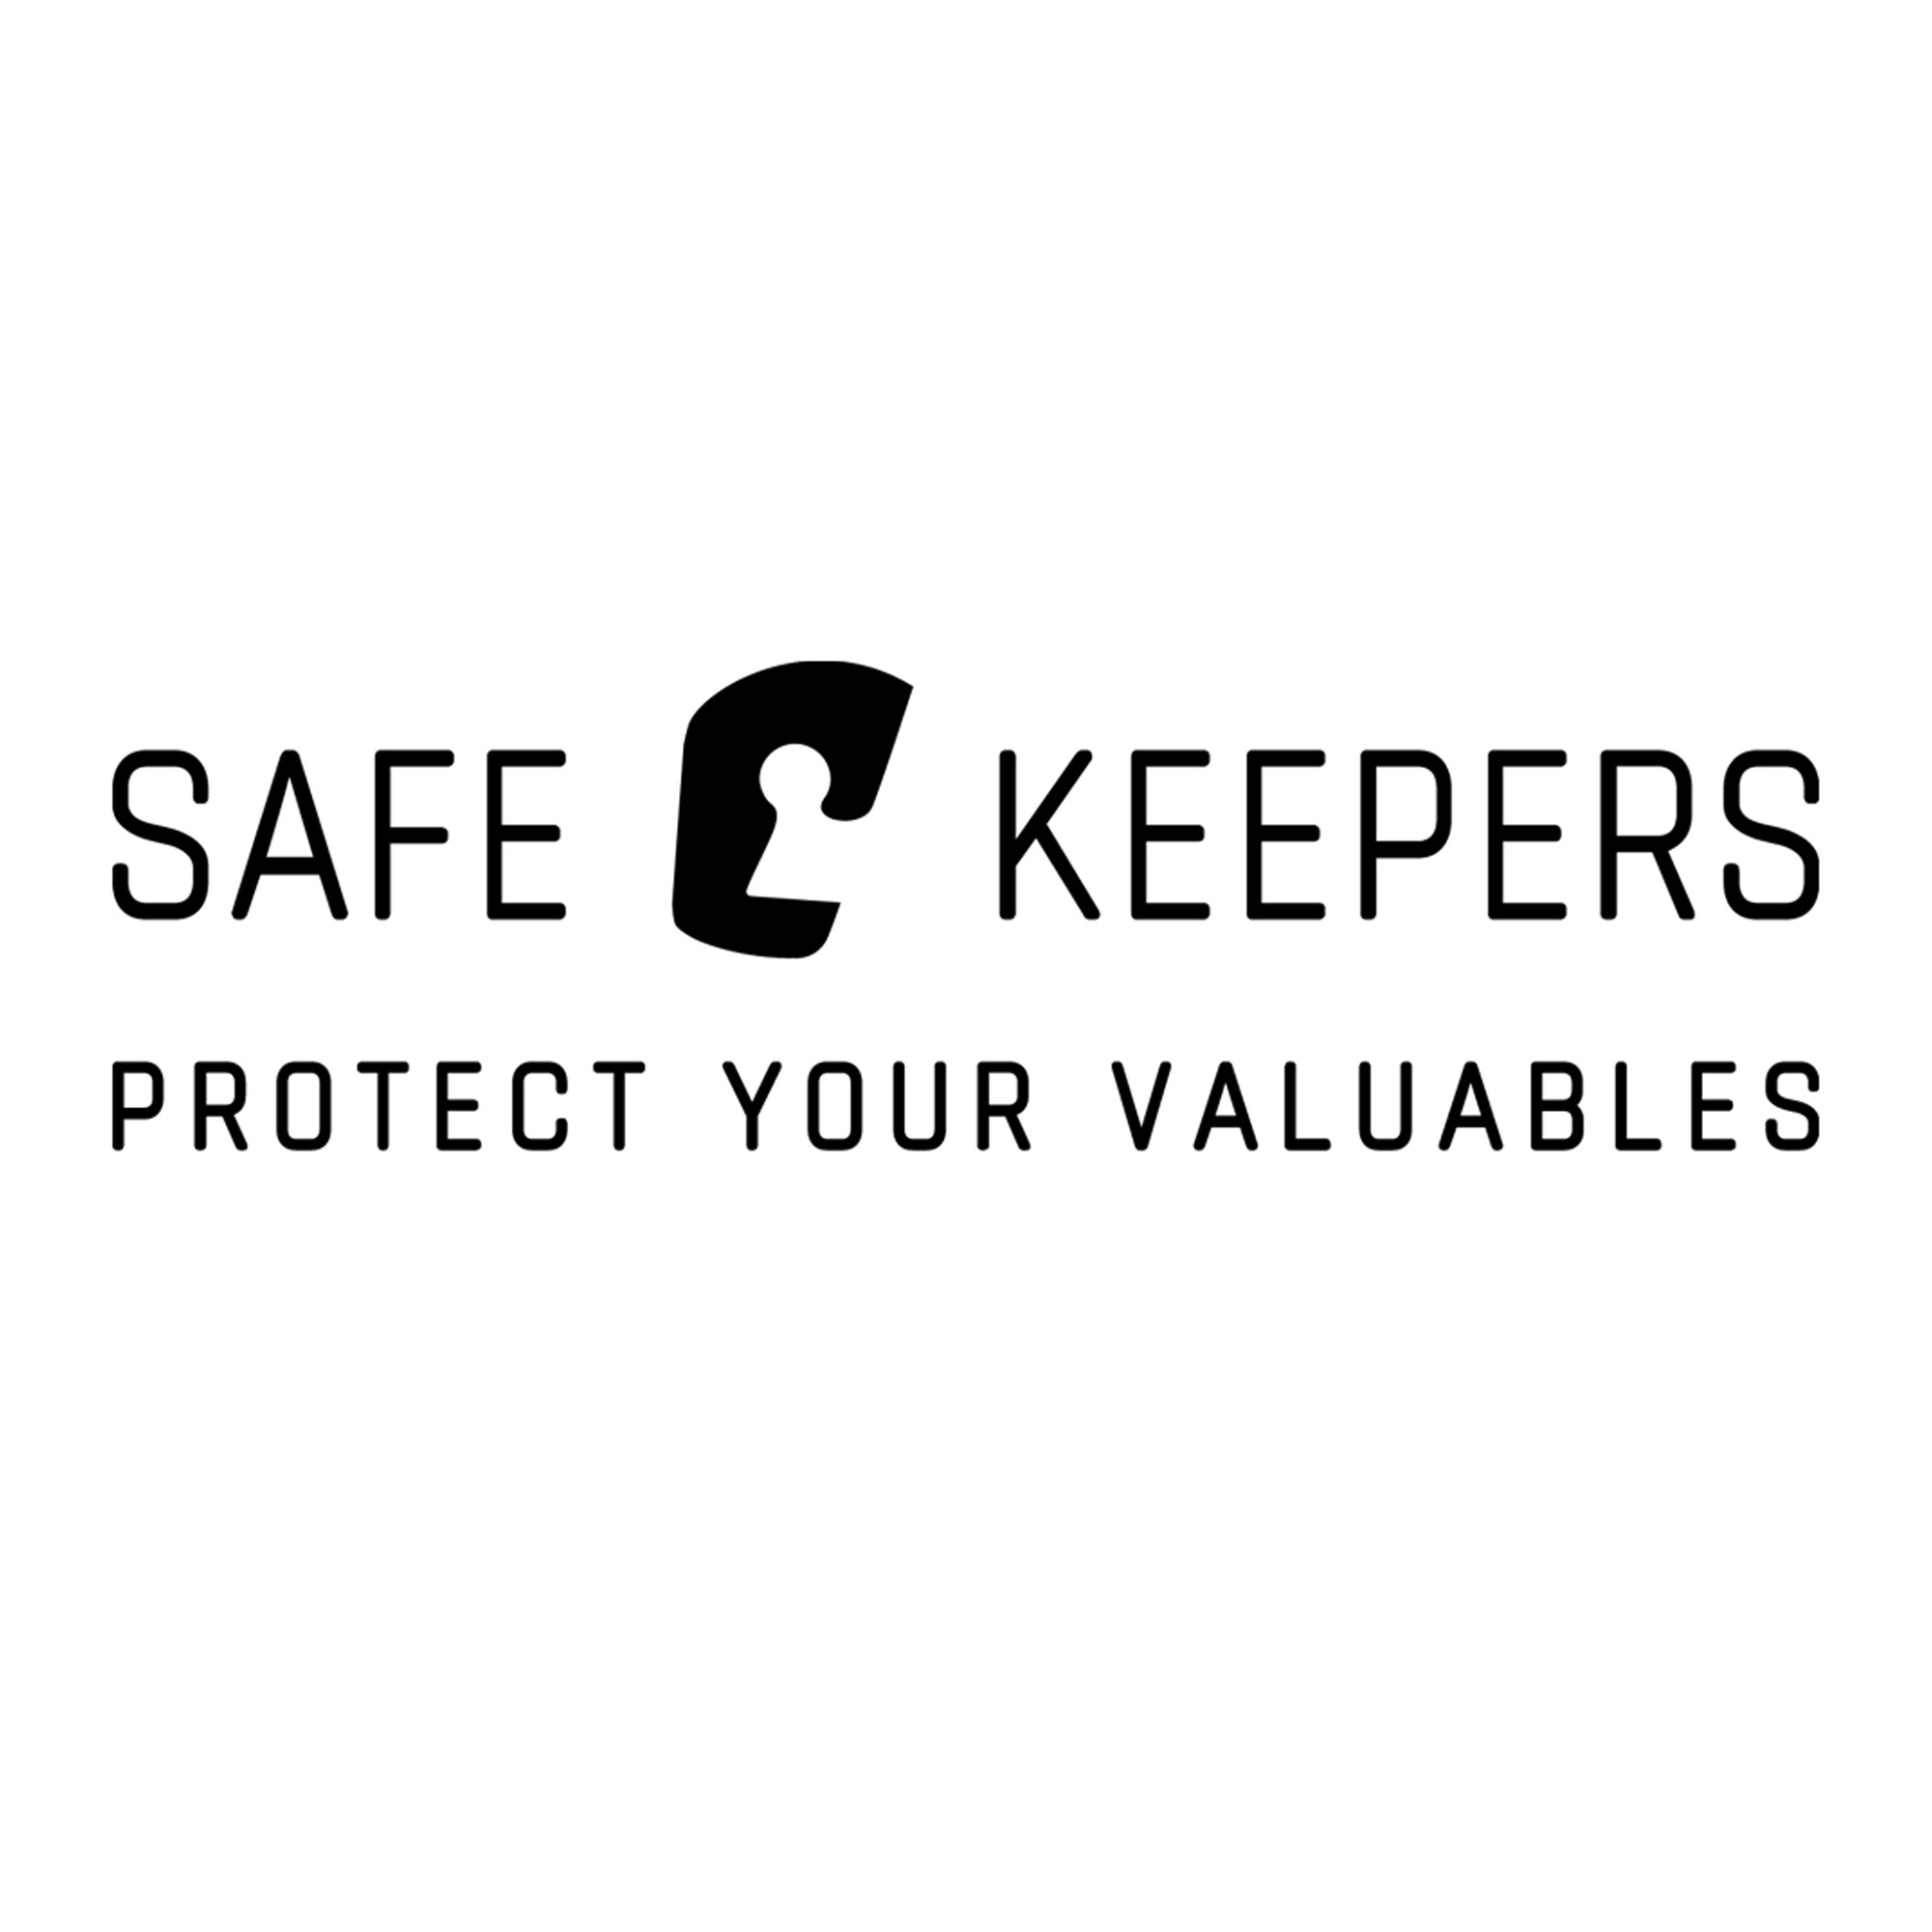 logo safekeepers